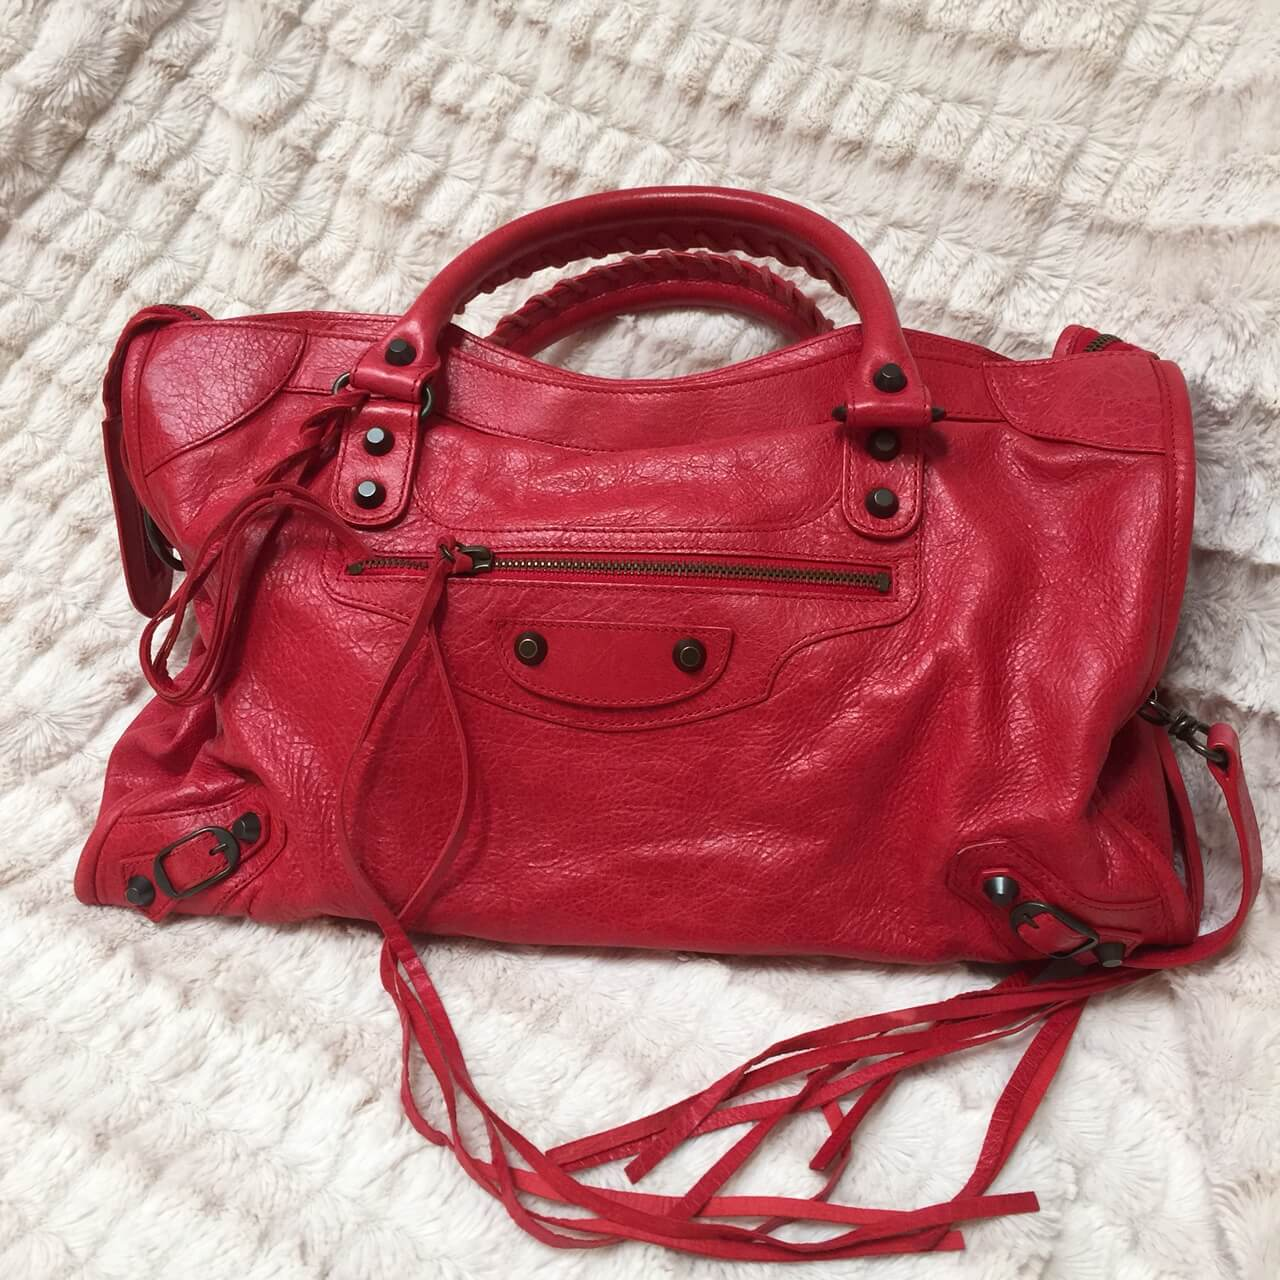 Balenciaga Motorcycle Bag Red